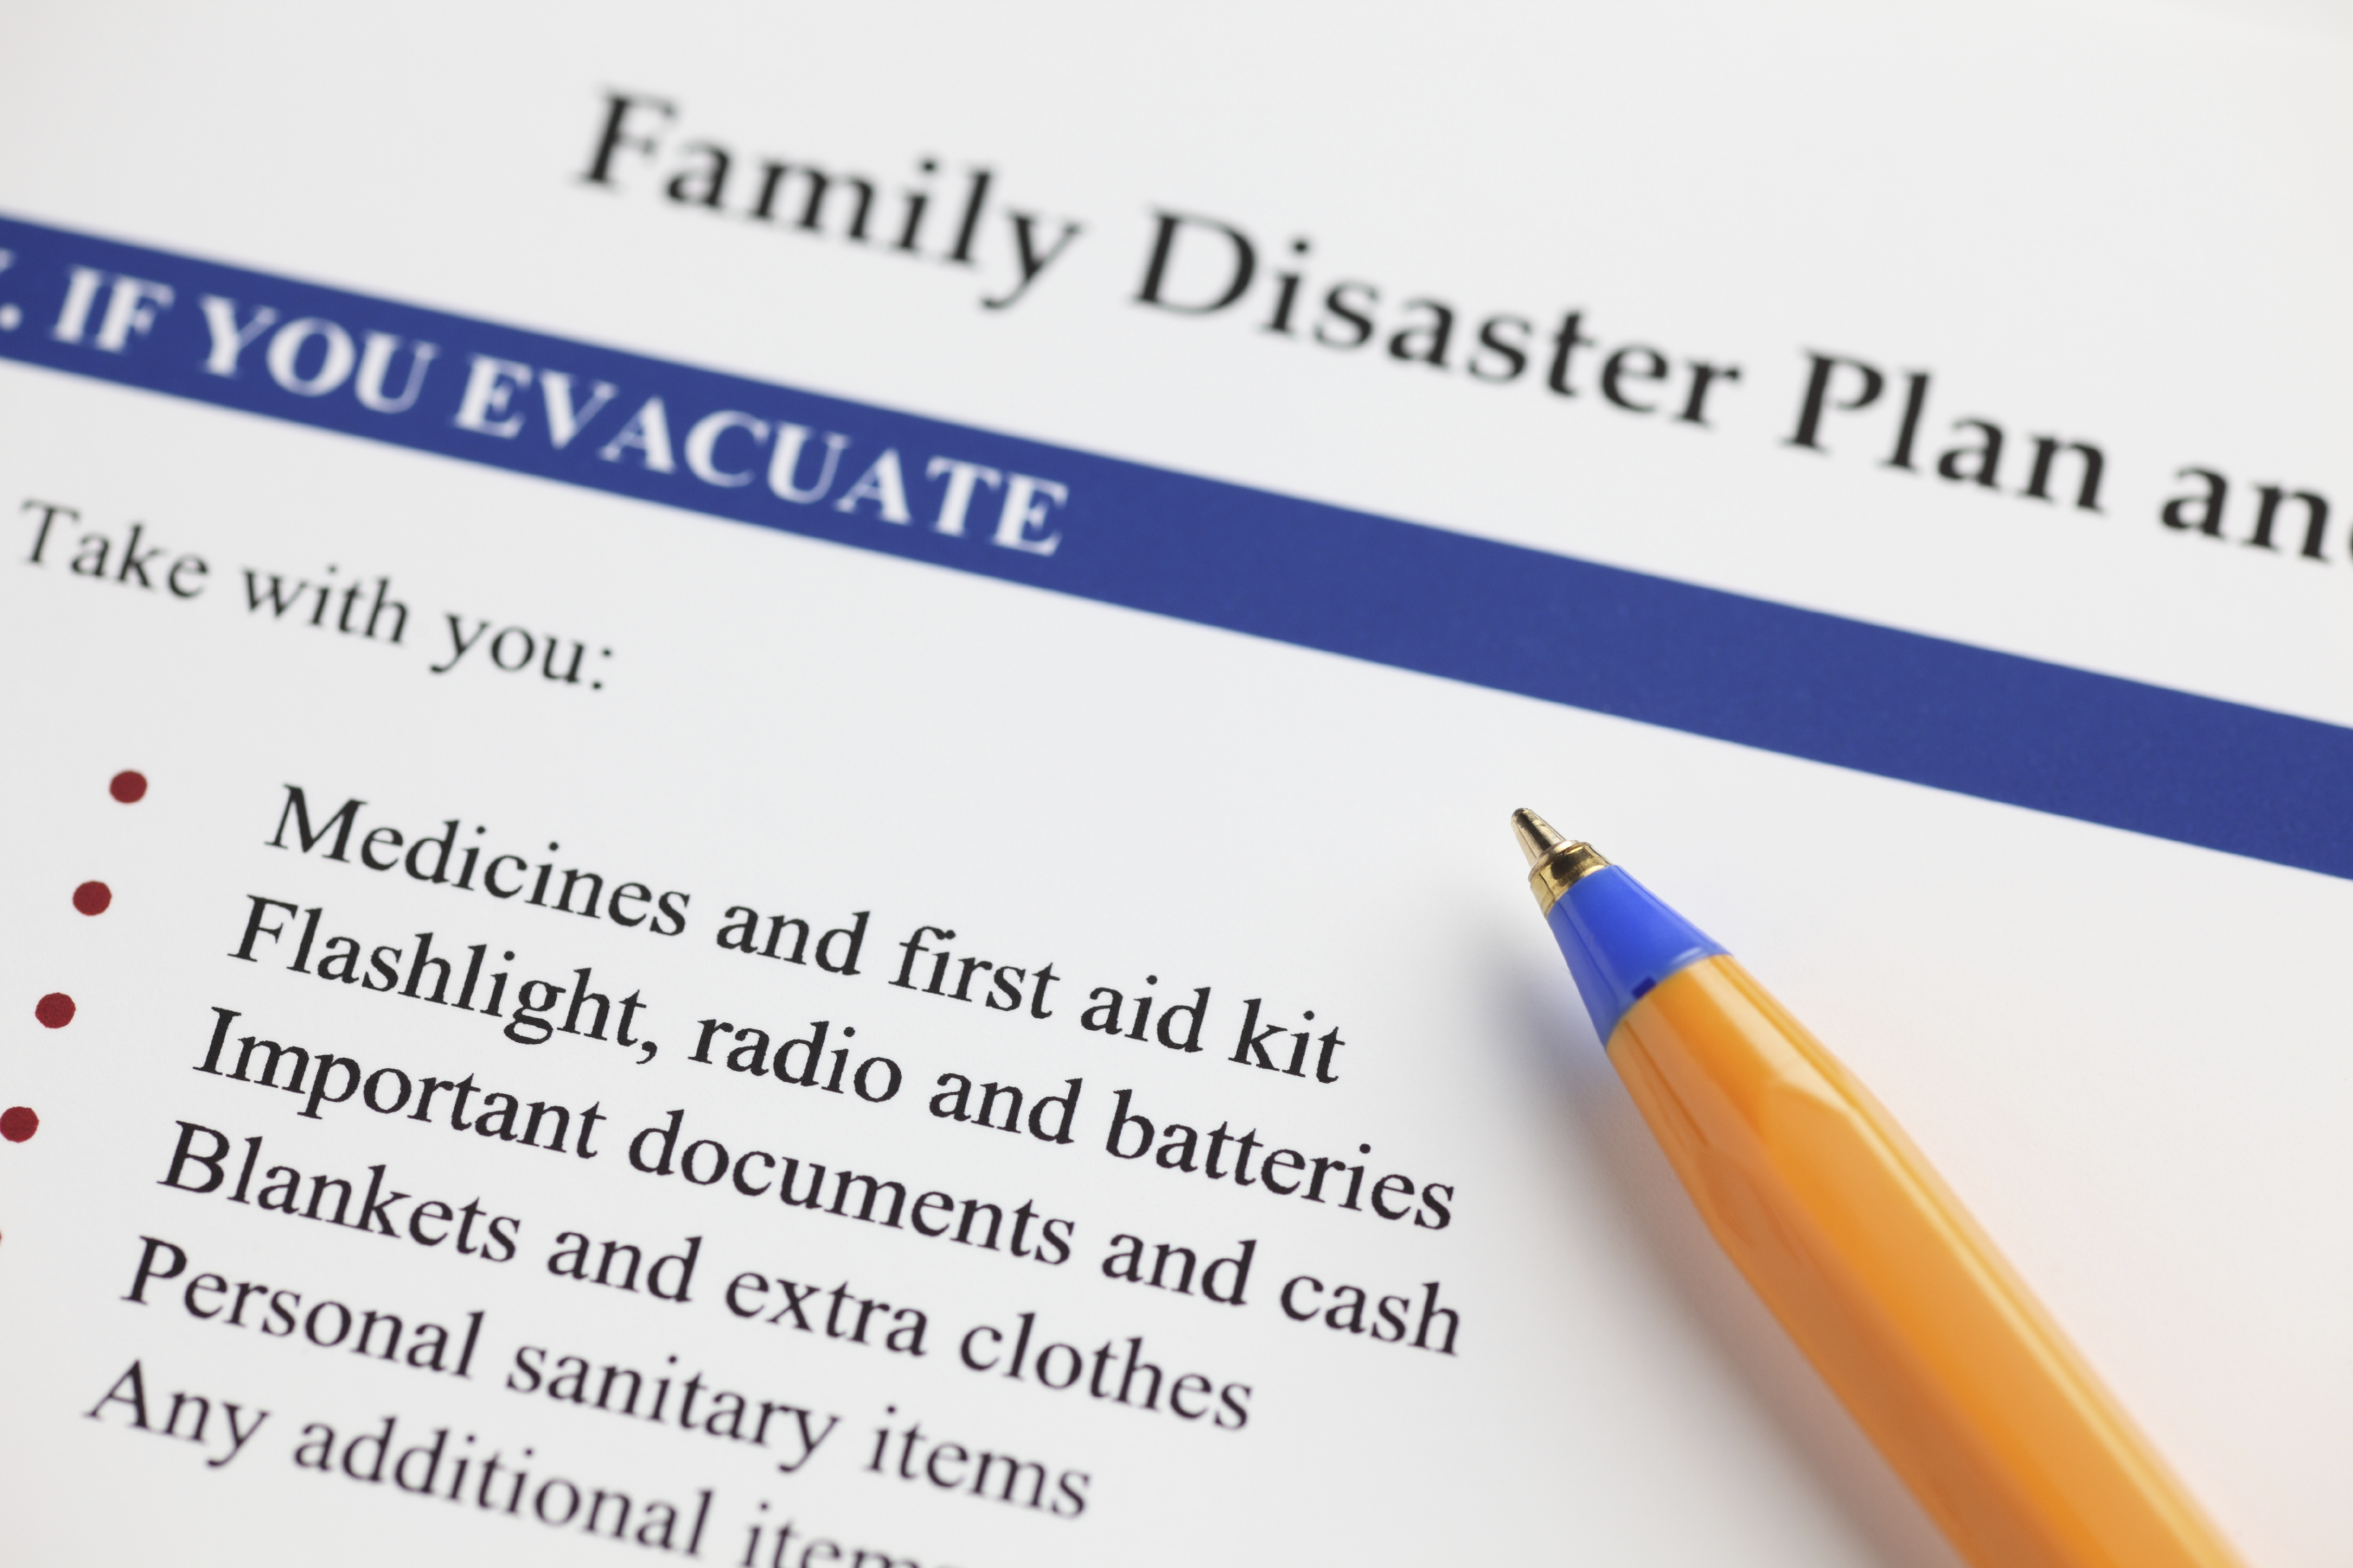 Family Planning for a Disaster